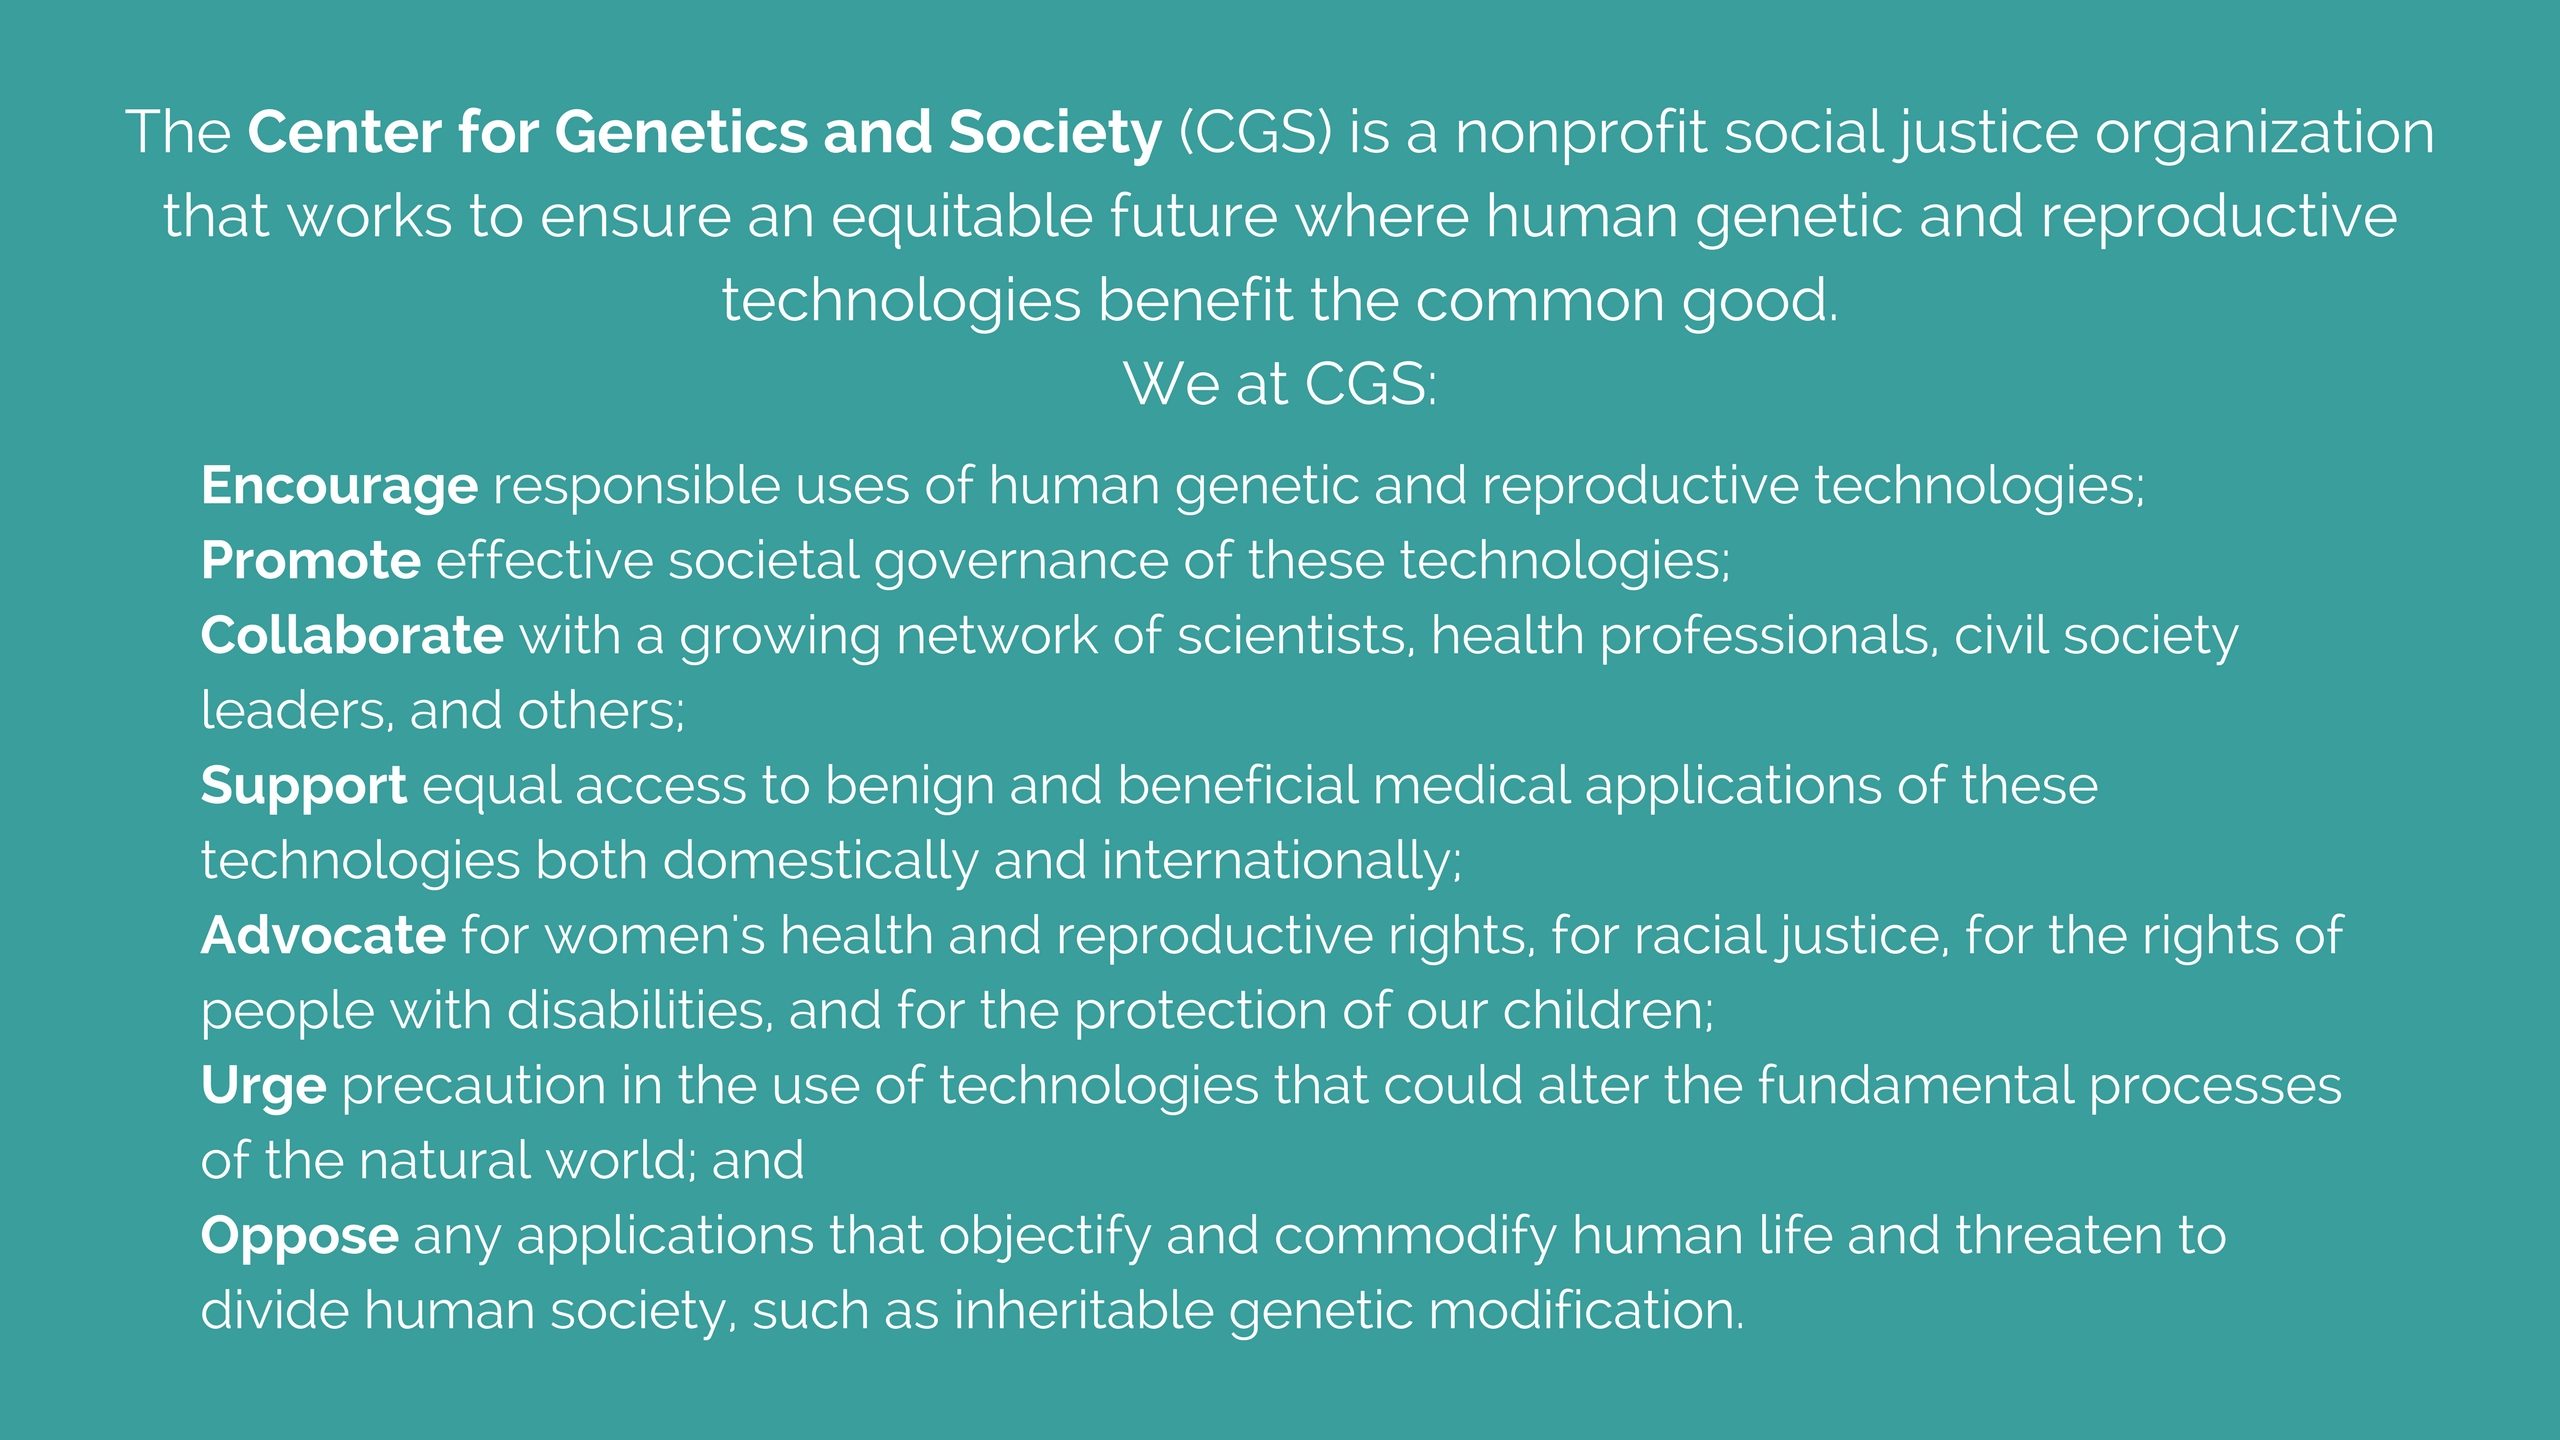 CGS's mission is to encourage responsible uses and effecitve governance of human genetic and assisted reproductive technologies